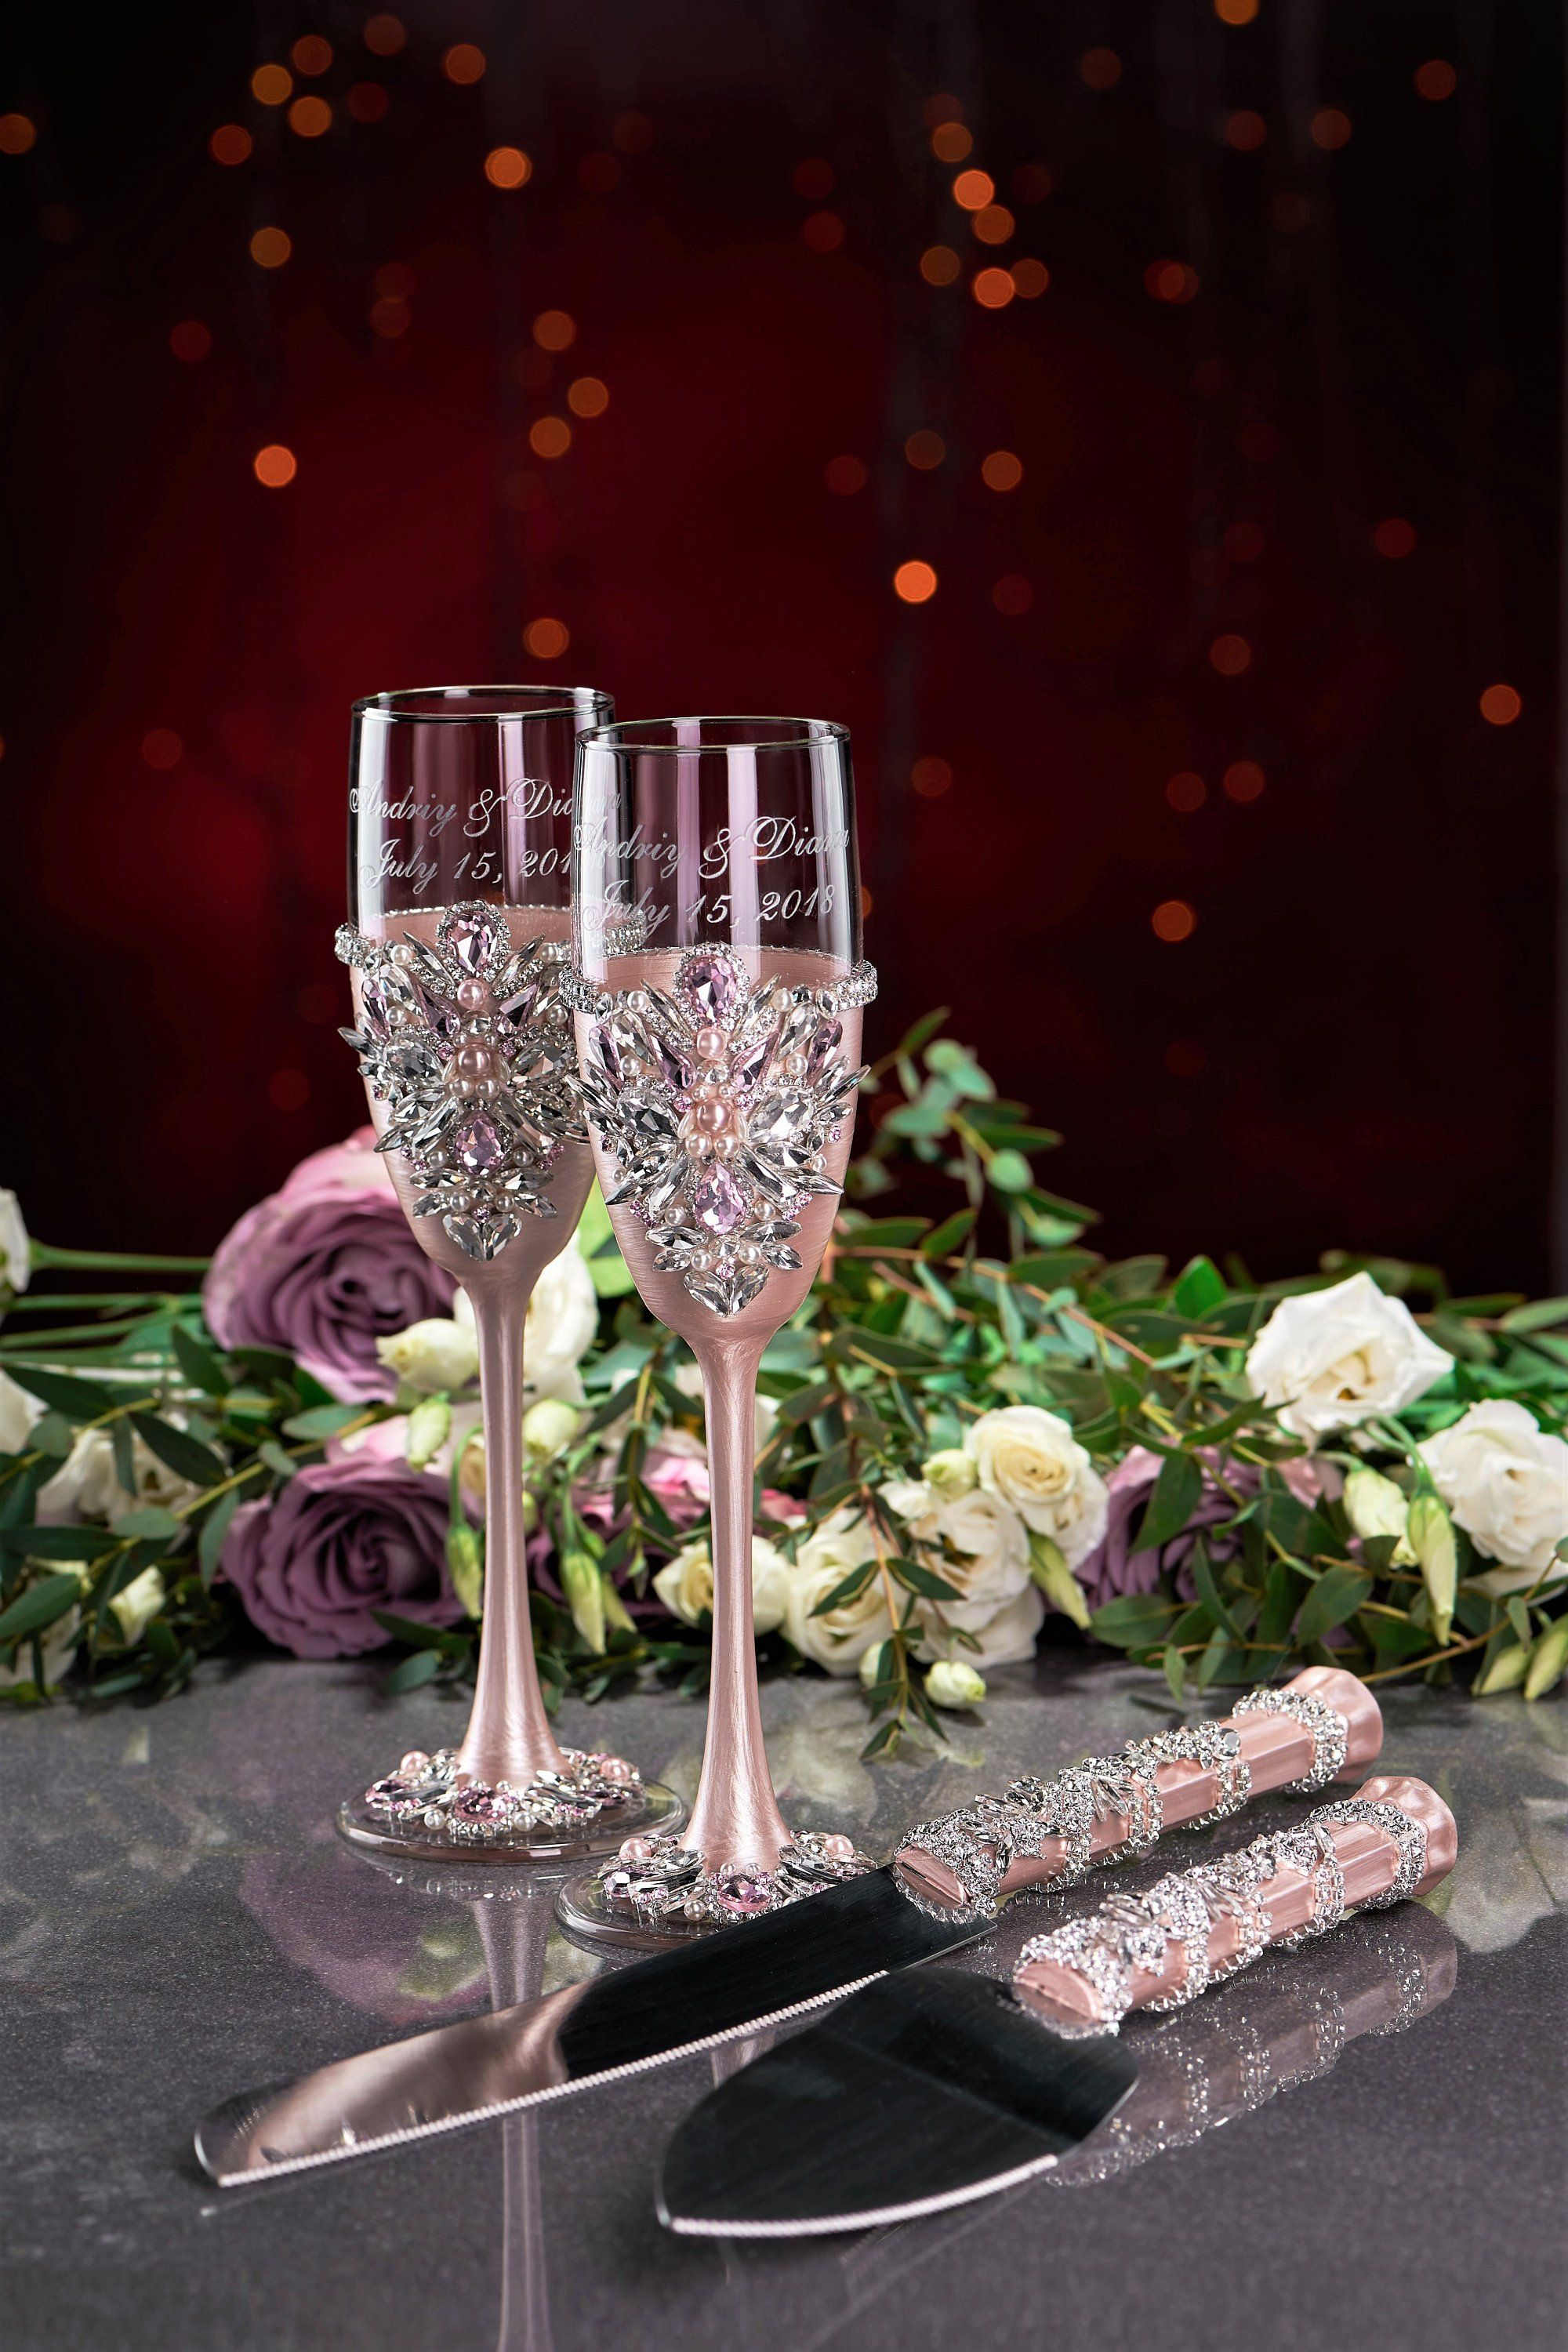 Wedding glasses and cake server plate and forks Unity